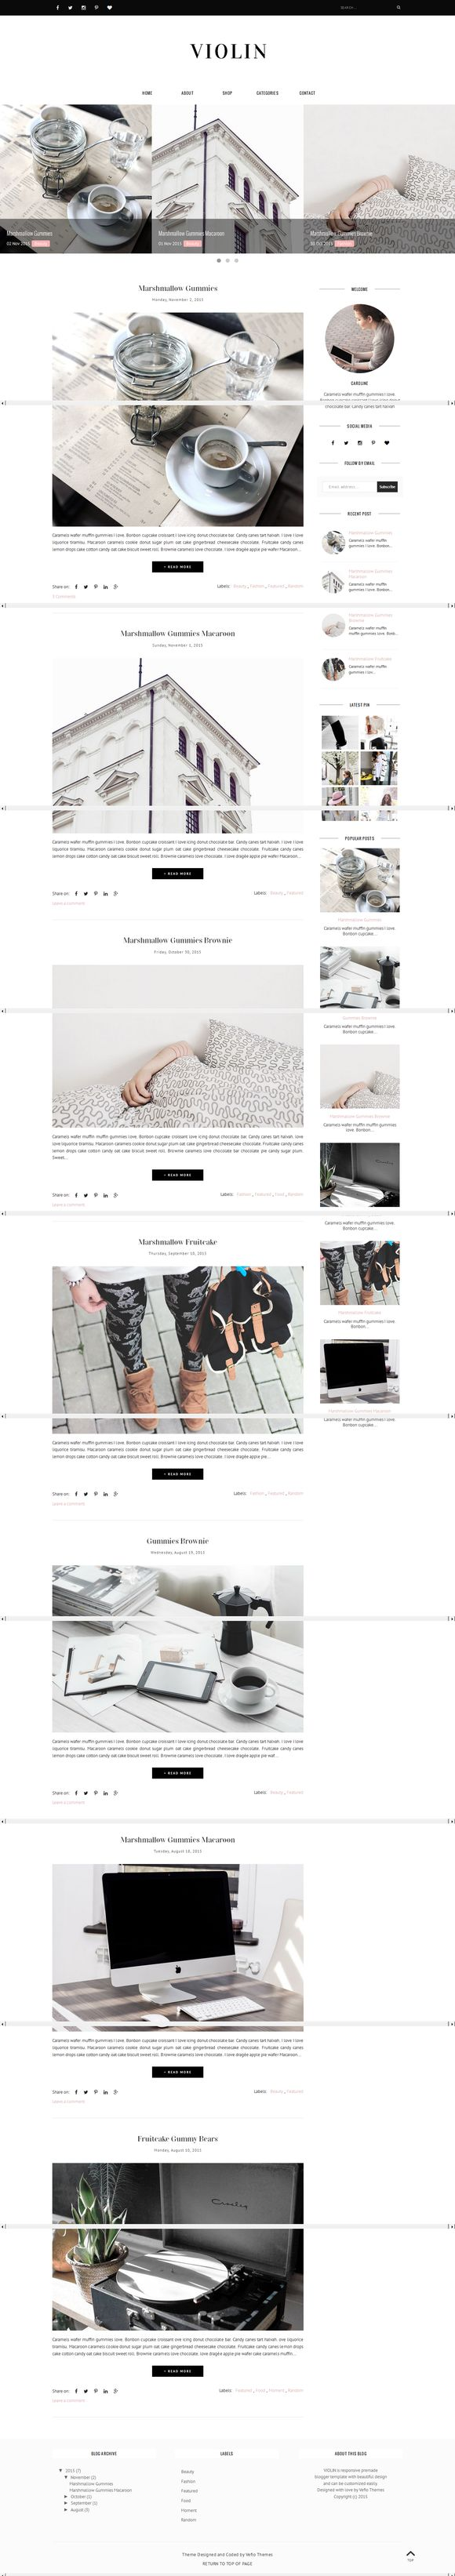 Blogger Template Responsive - Violin by vefiothemes on @creativework247